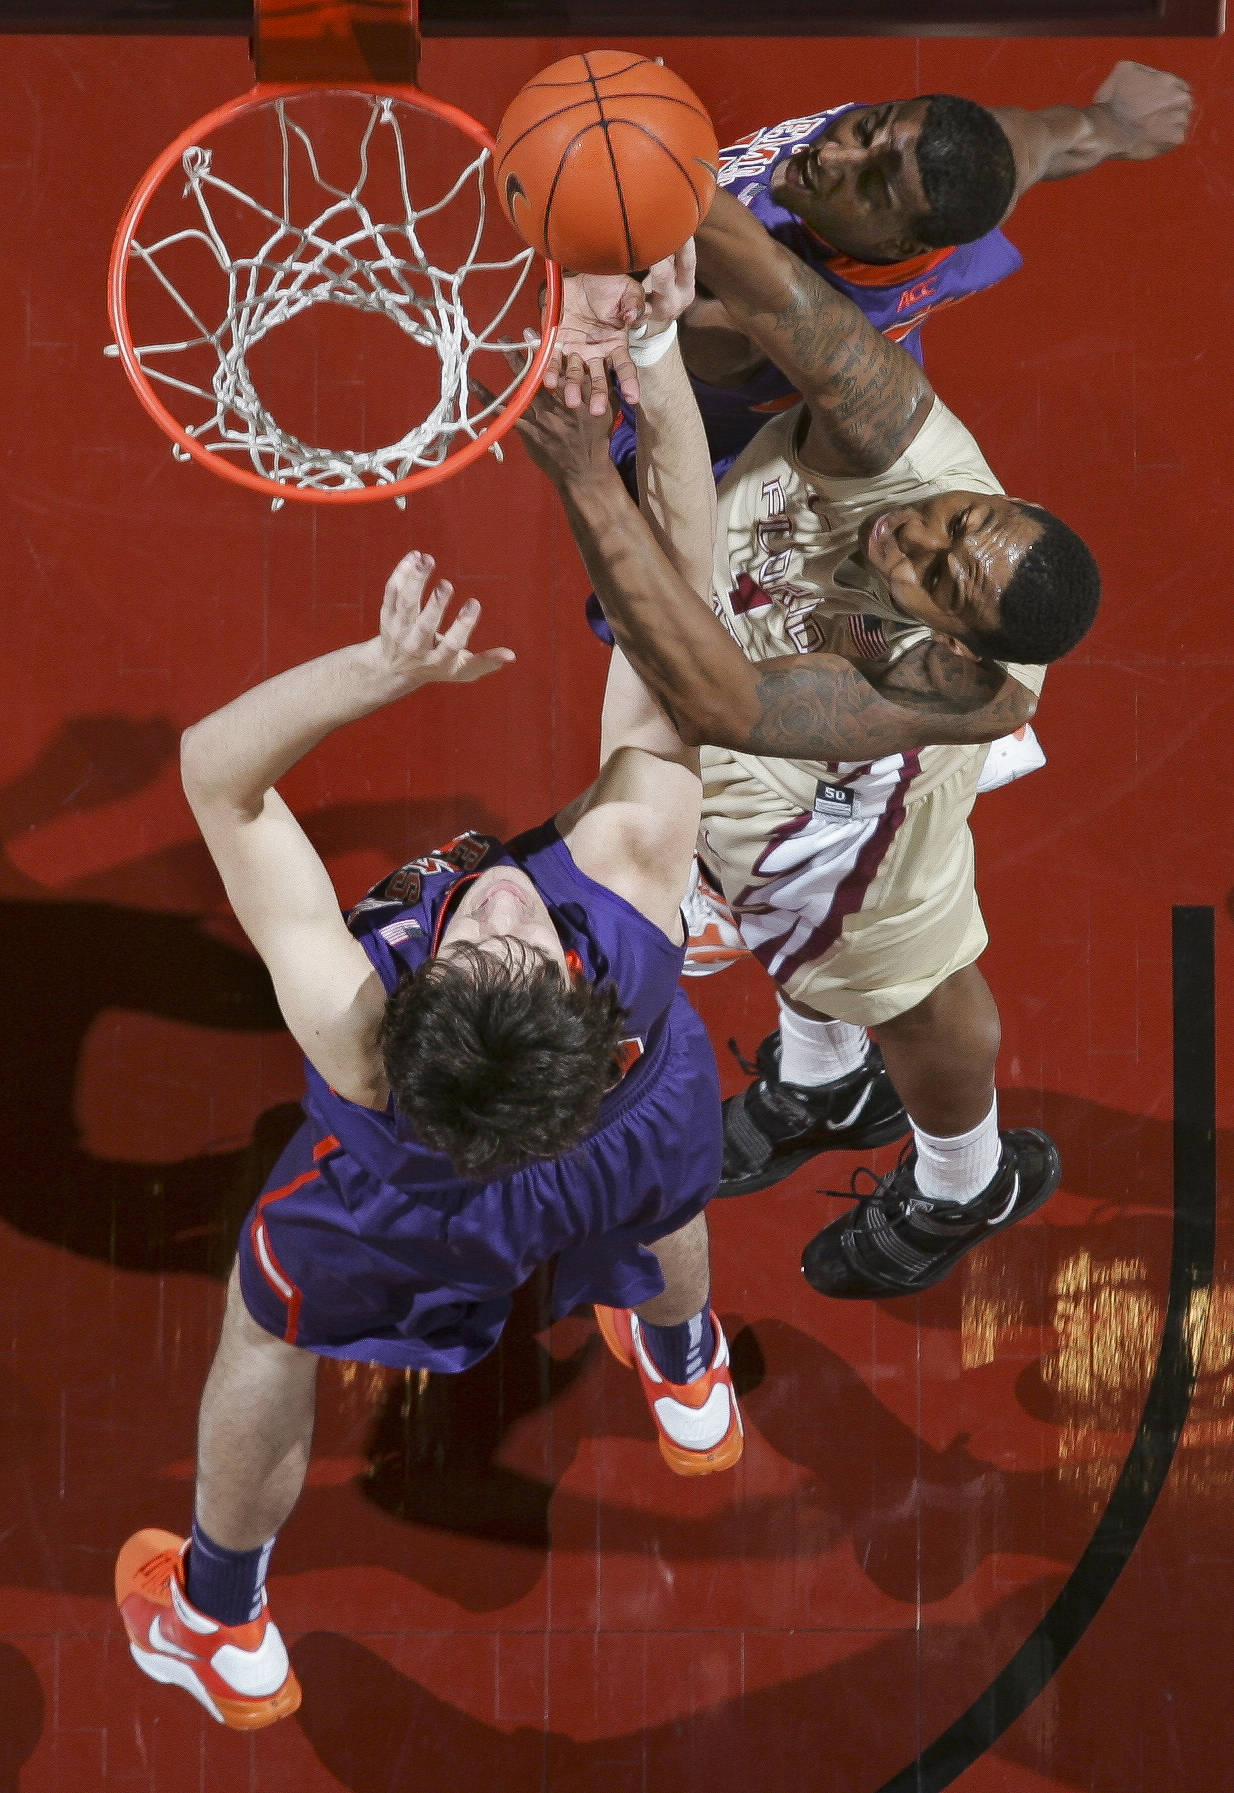 Florida State's Xavier Gibson (1) gets between Clemson's Catalin Baciu, bottom, and Devin Coleman, top, for a tip-in during the first half. (AP Photo/Phil Sears)